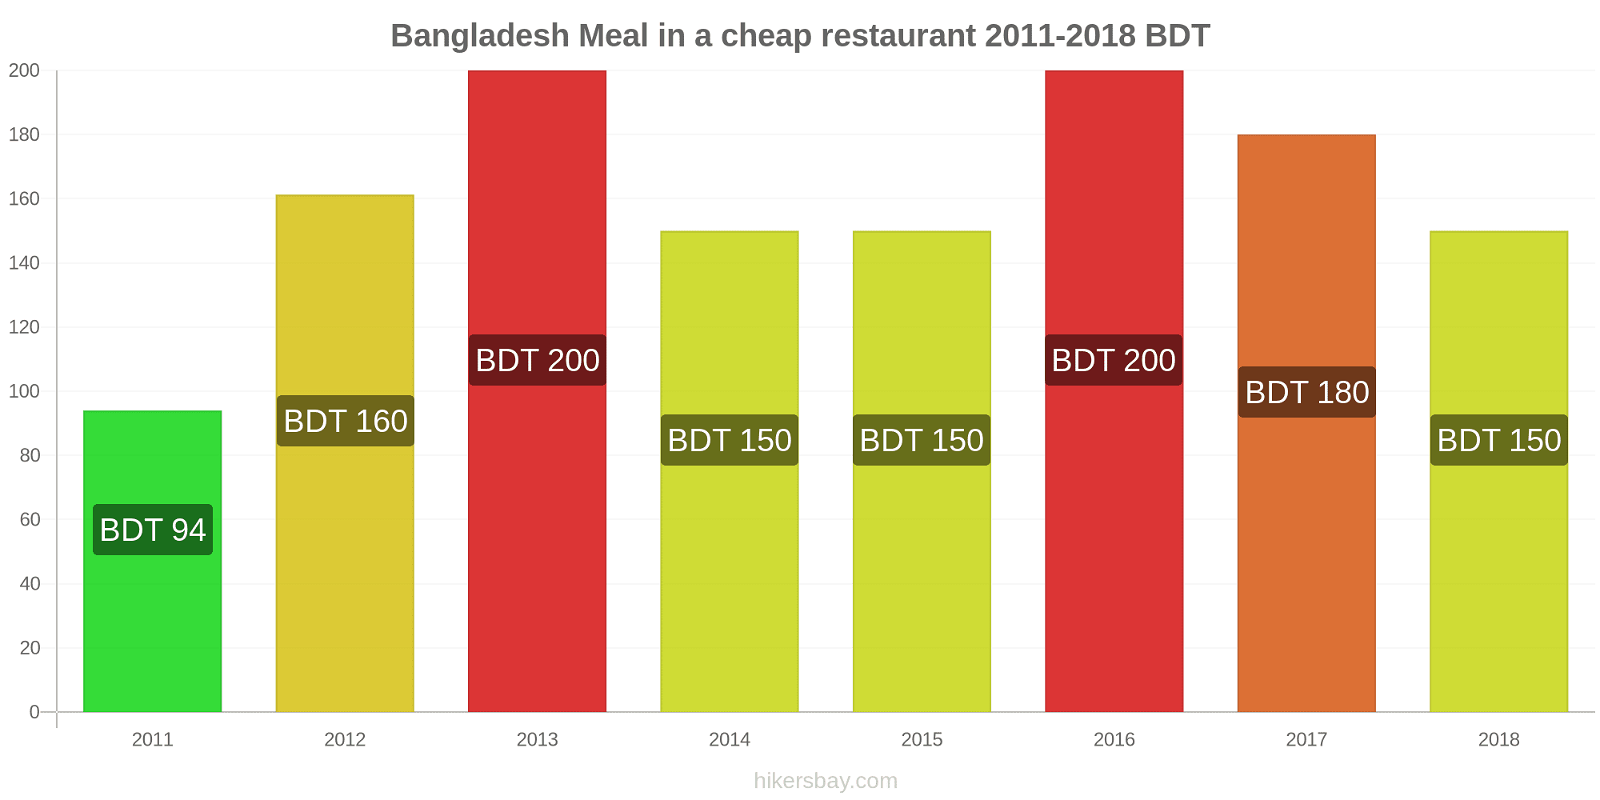 Bangladesh price changes Meal in a cheap restaurant hikersbay.com